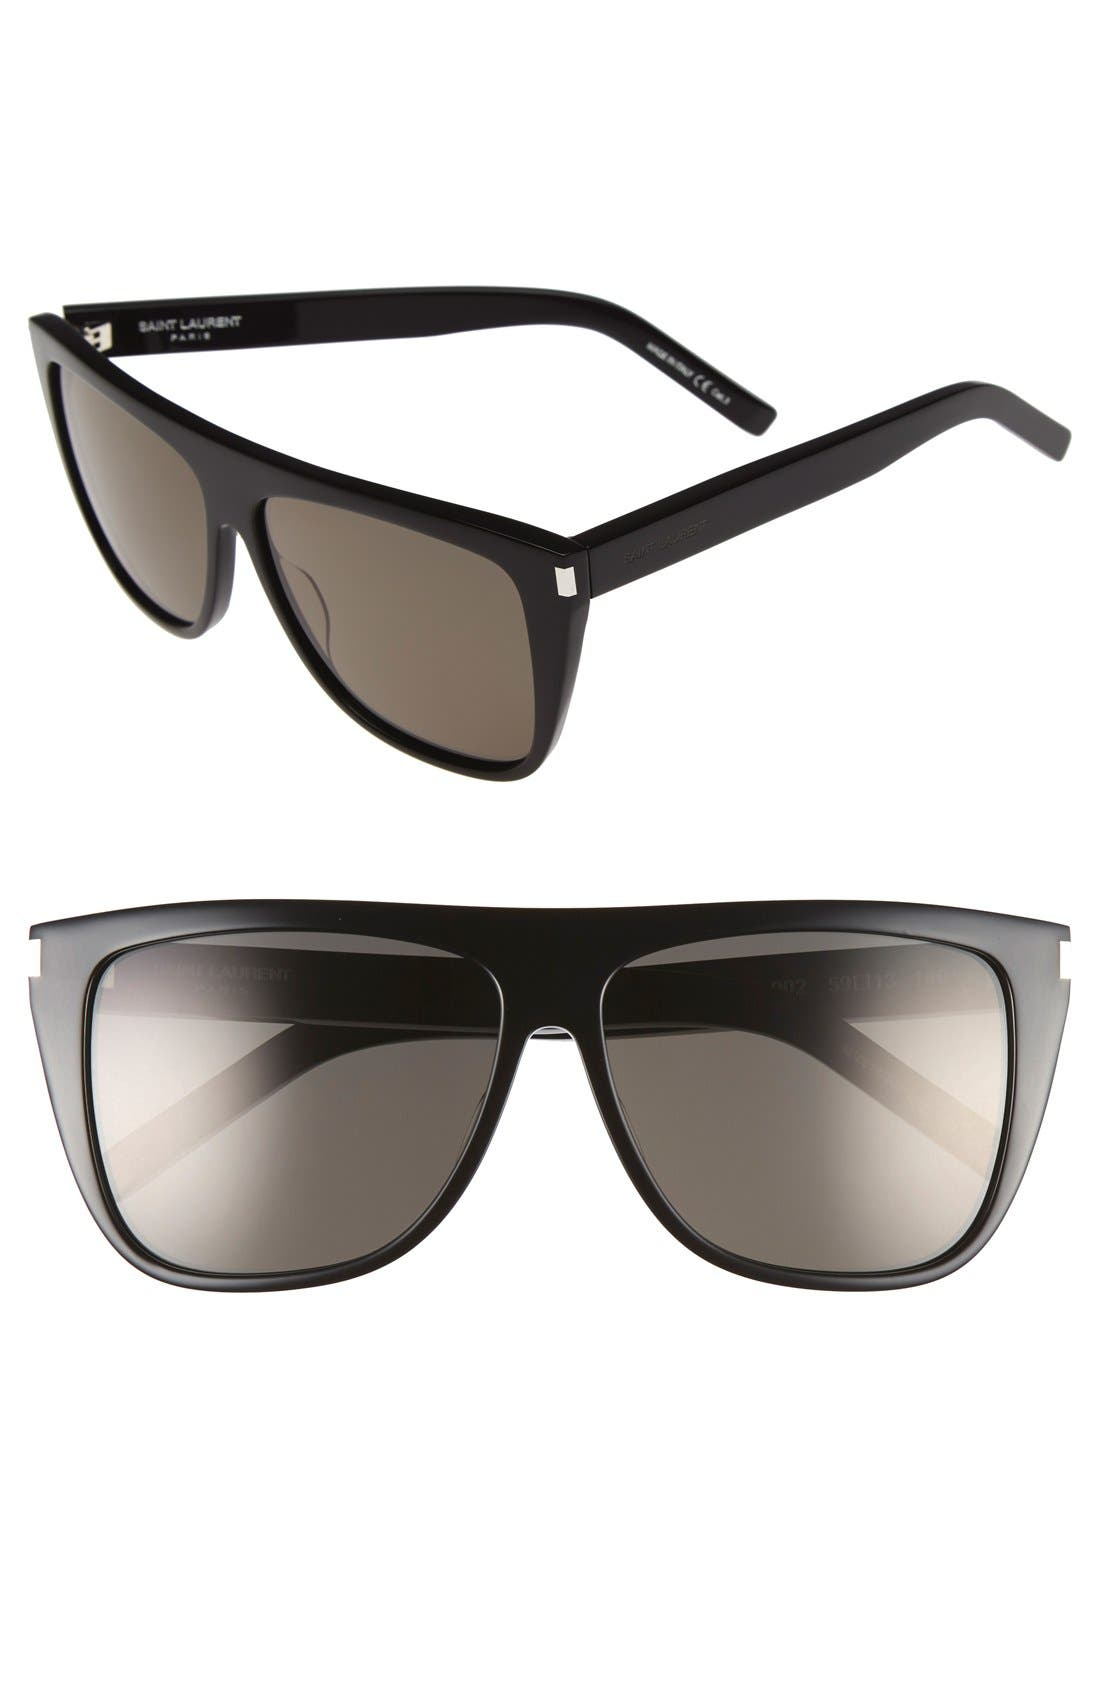 Main Image - Saint Laurent 59mm Sunglasses